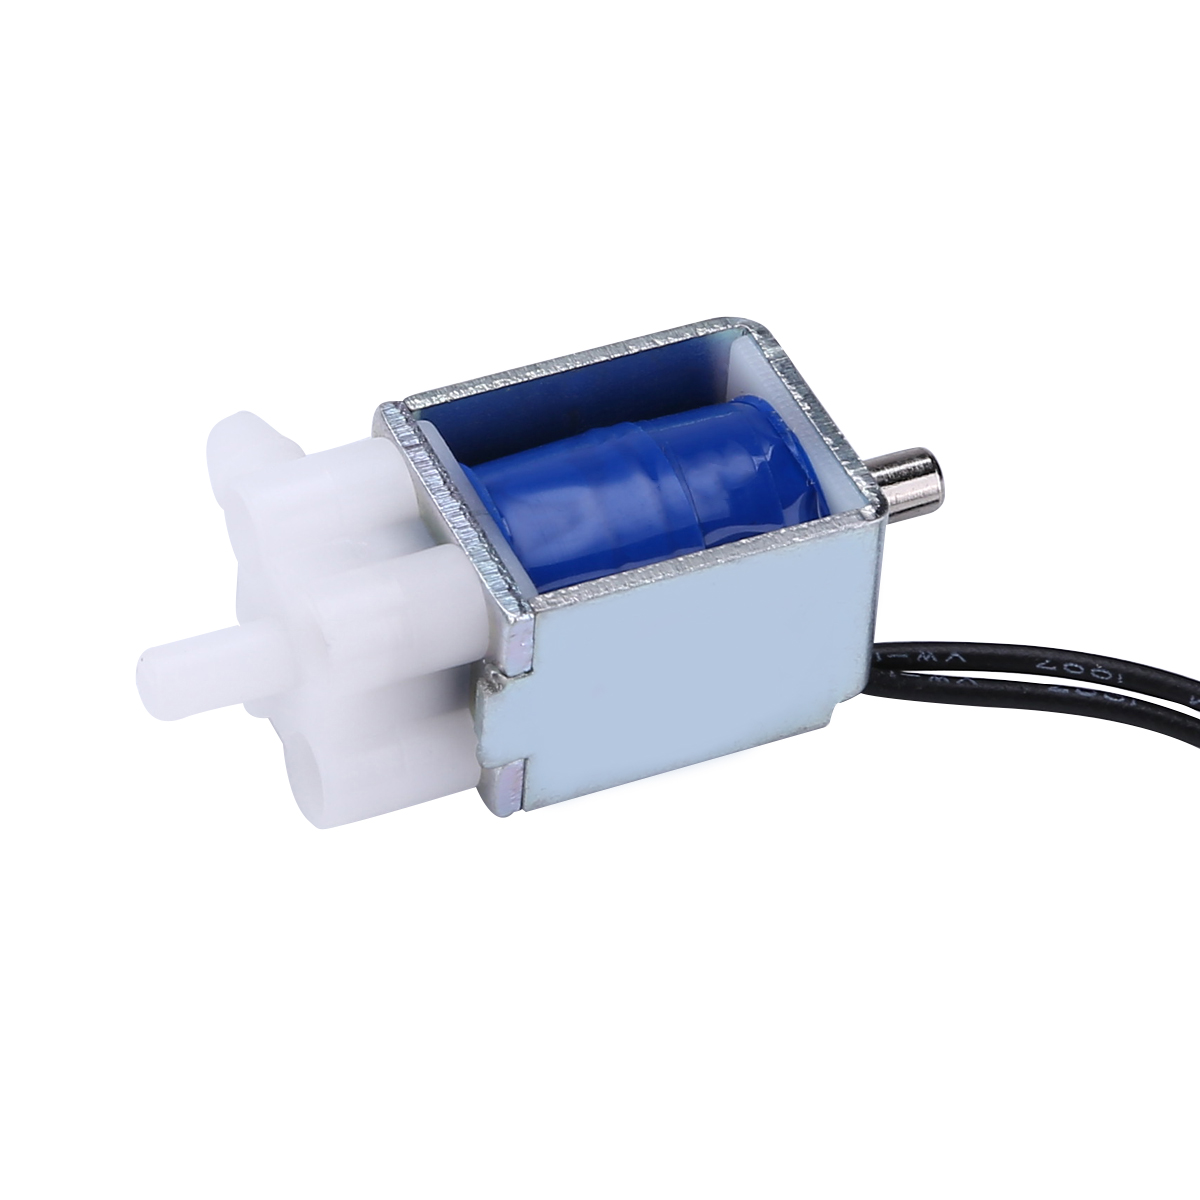 1Pc Solenoid Valve 220mA Electric Solenoid Valve Micro 2-Position 3-Way Electric Solenoid Valve For Gas Air Pump DC 5V 6V